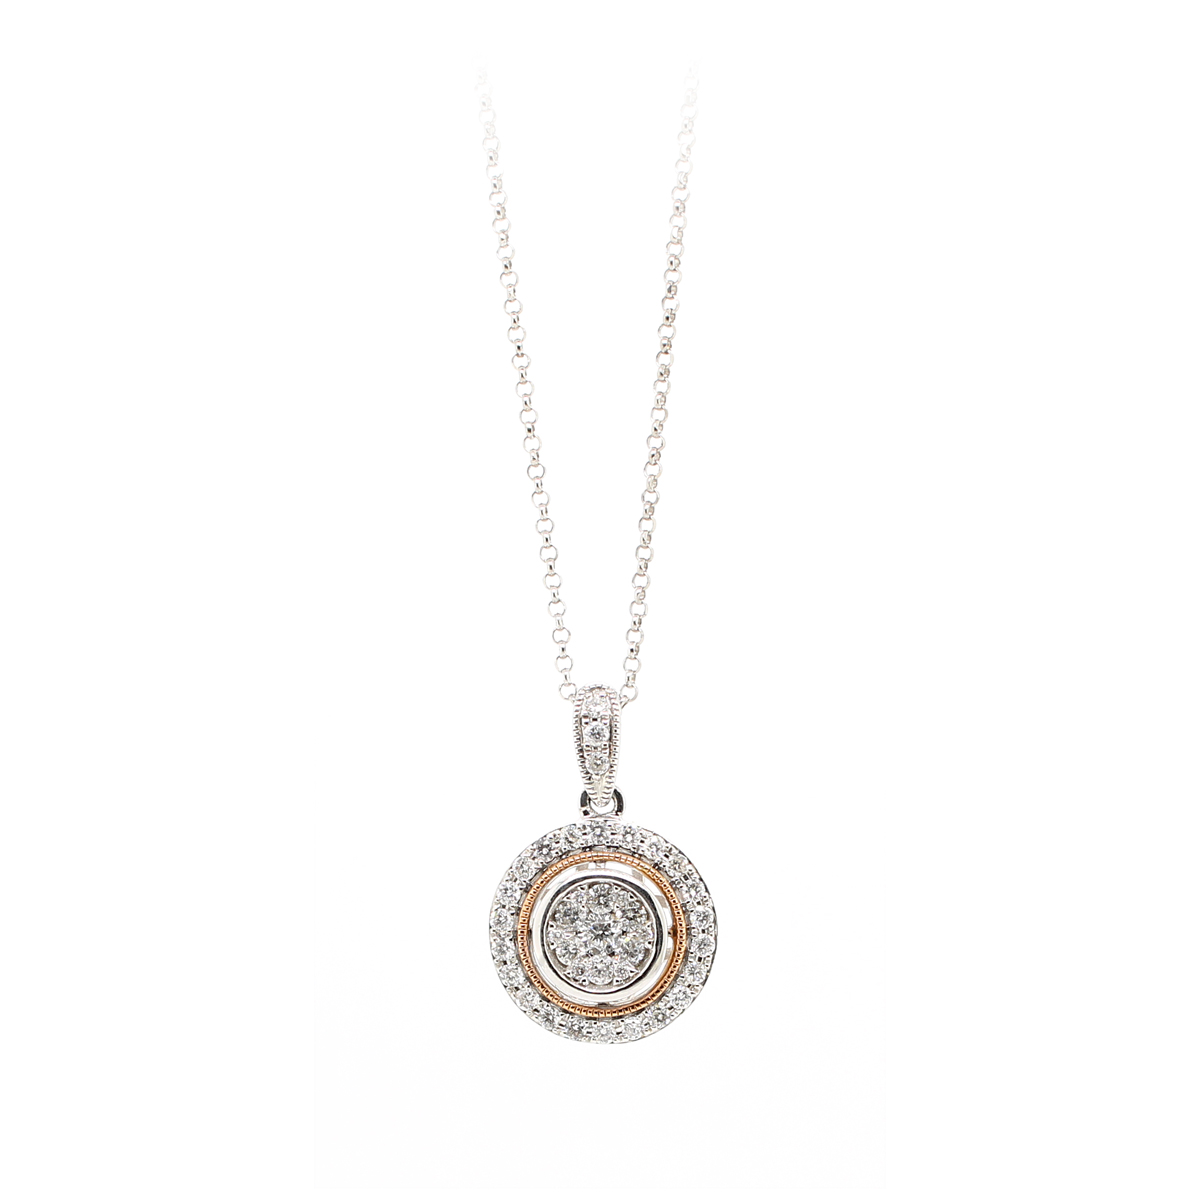 14 Karat White Gold Round Halo Diamond Pendant Necklace